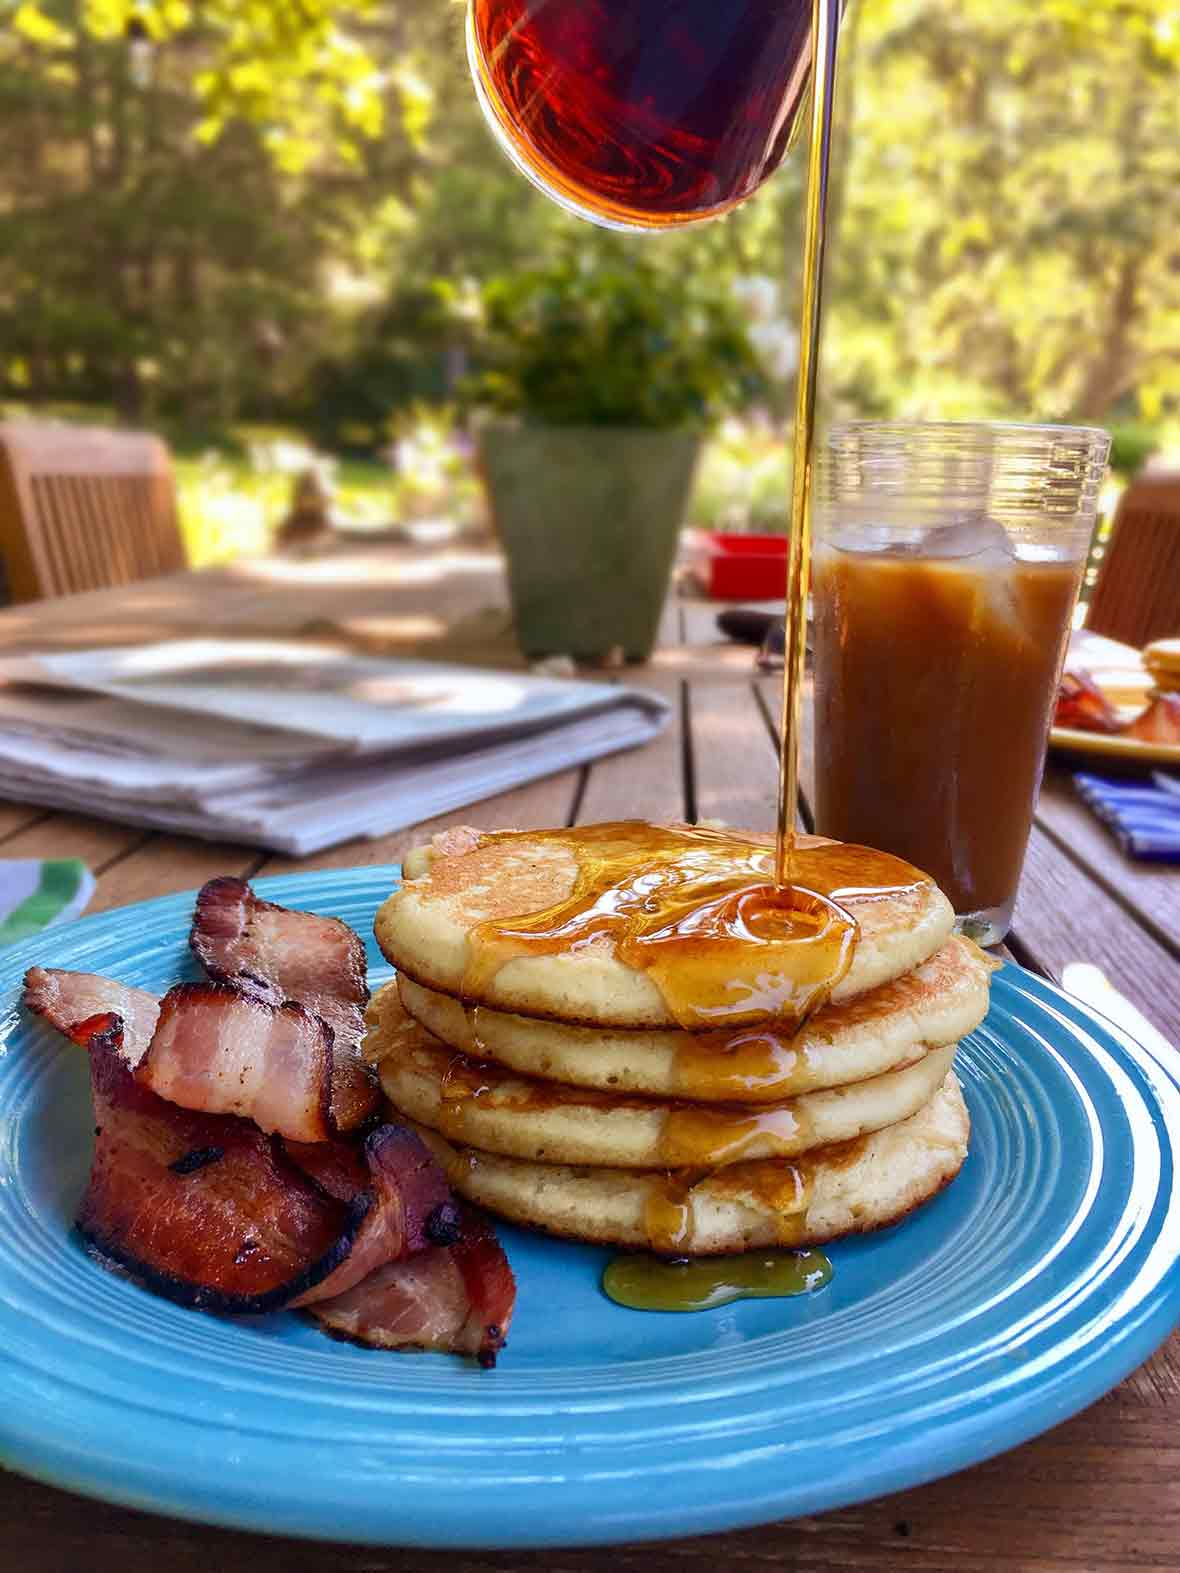 A blue plate topped with three light and fluffy pancakes, maple syrup, and cooked bacon.